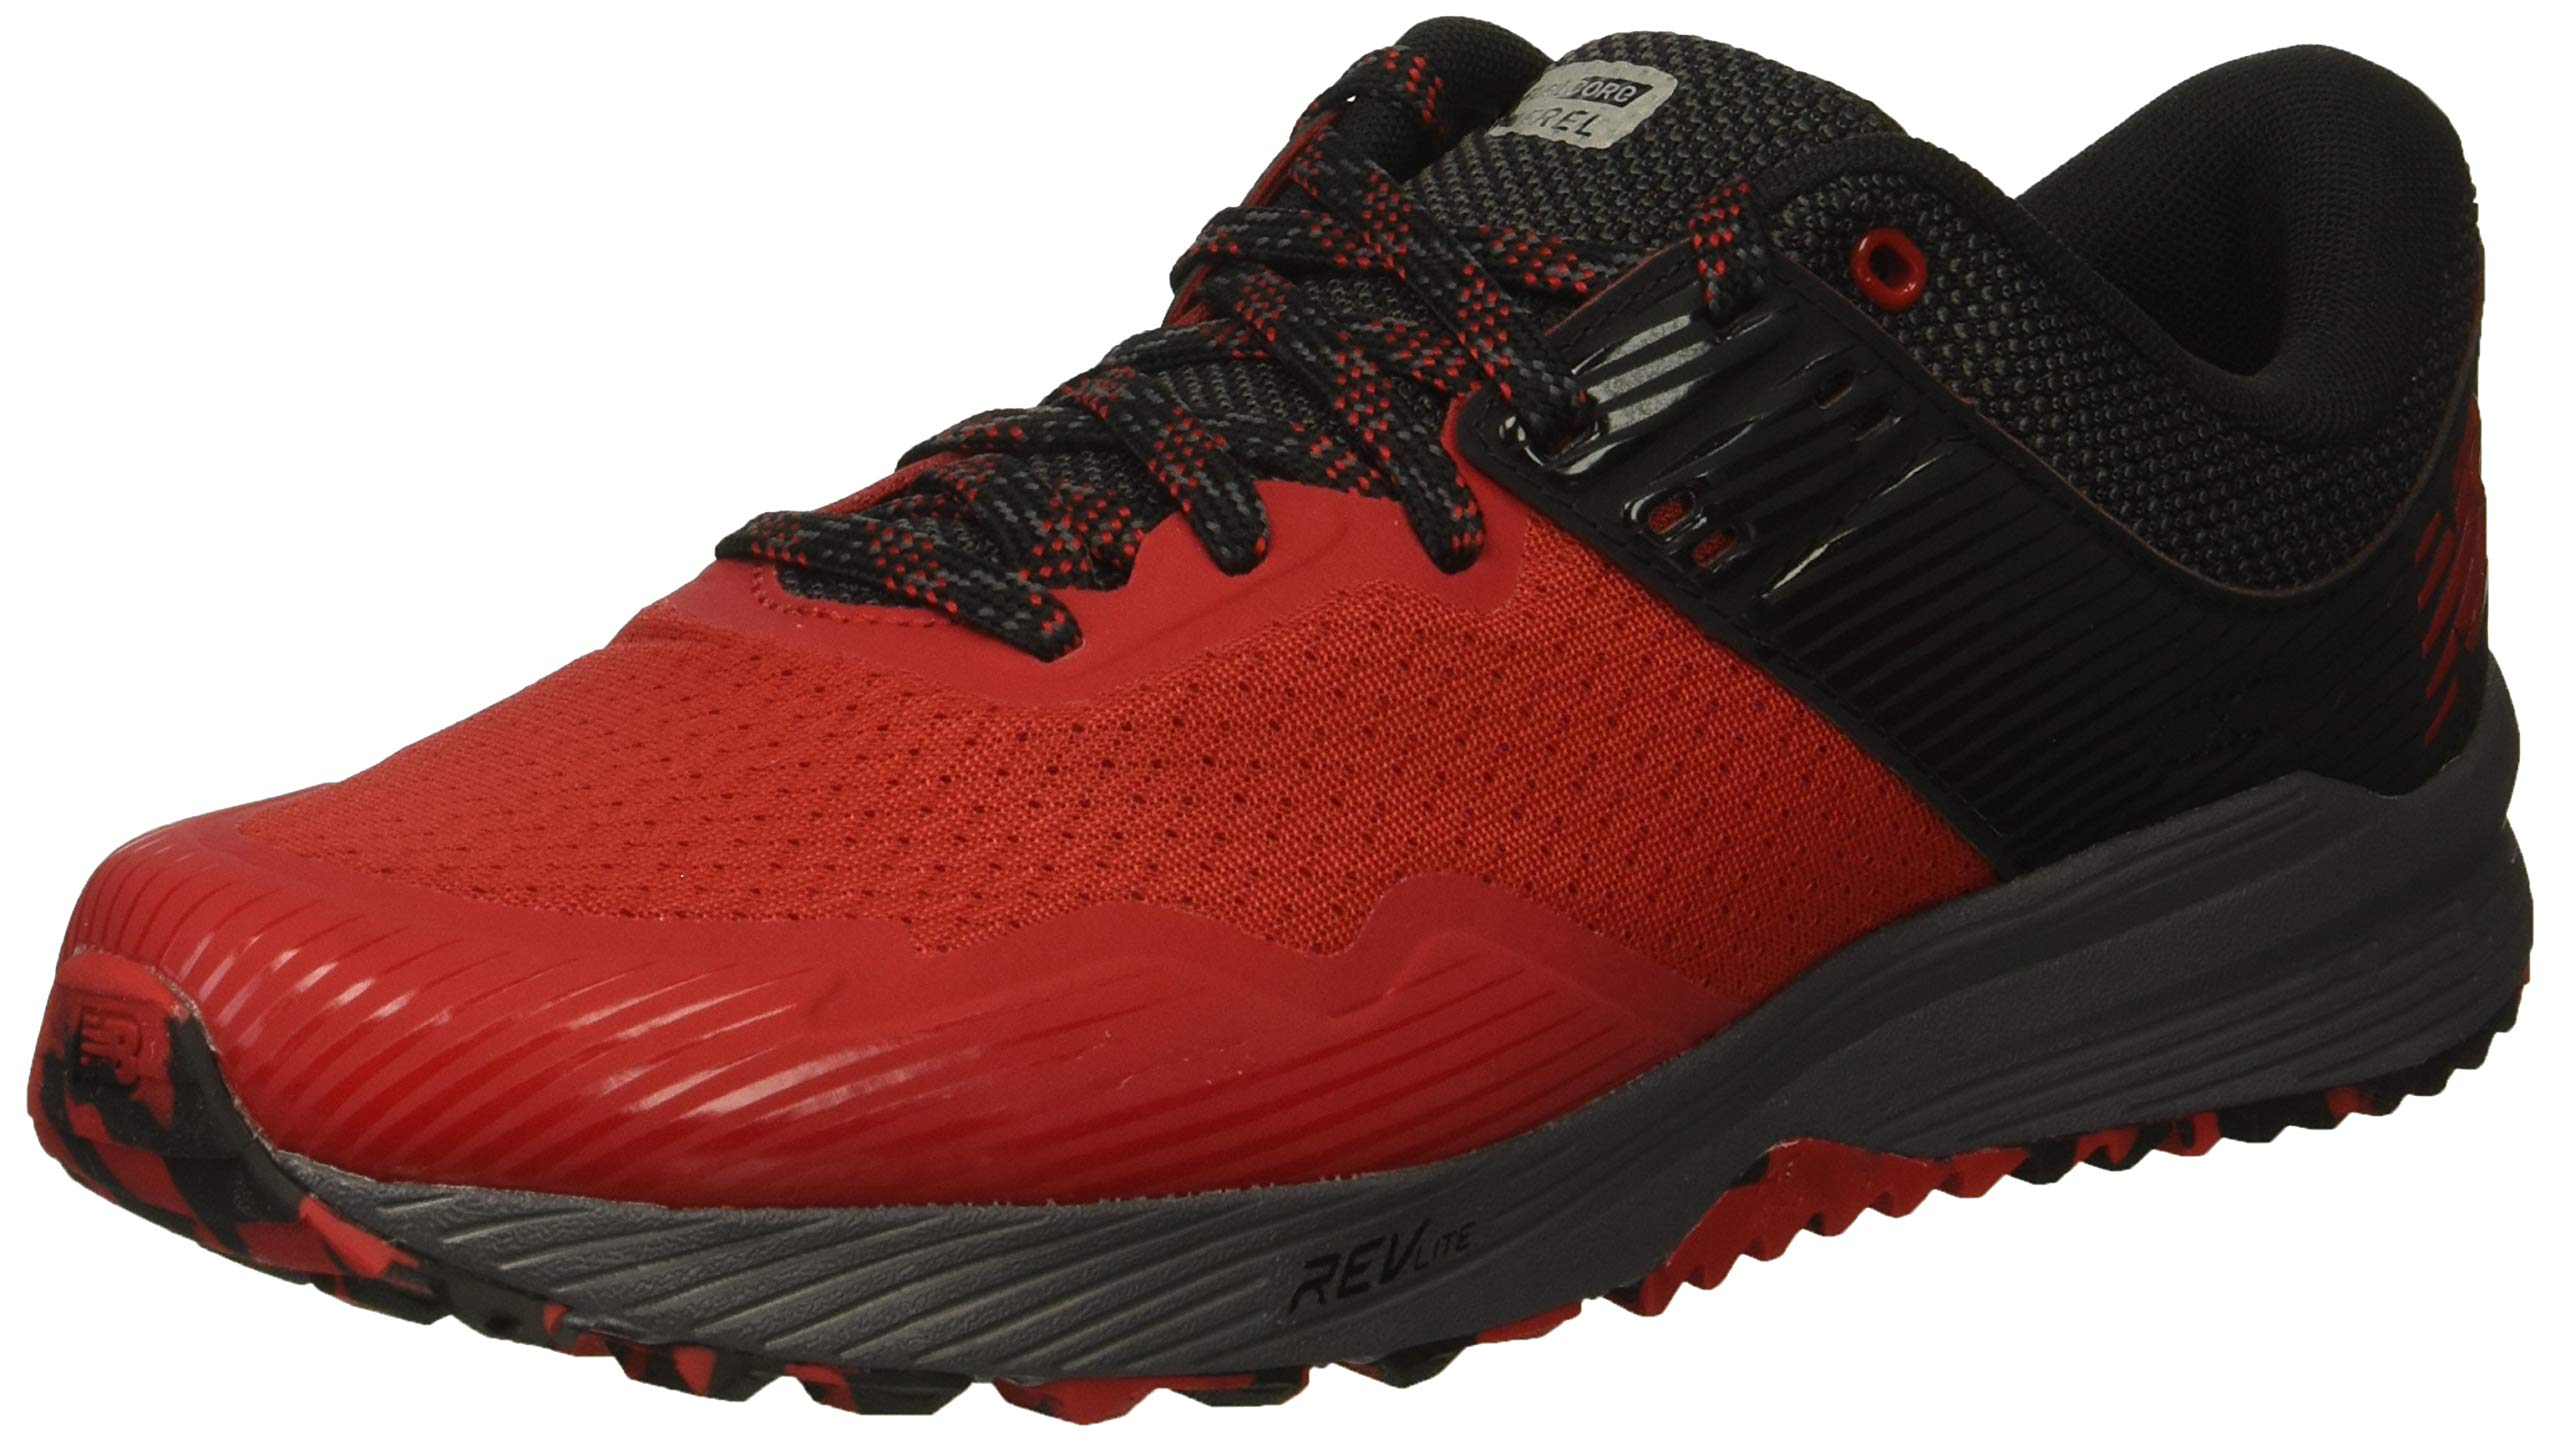 New Balance Men's Nitrel V2 FuelCore Trail Running Shoe, Team red/Black/Magnet, 7 D US